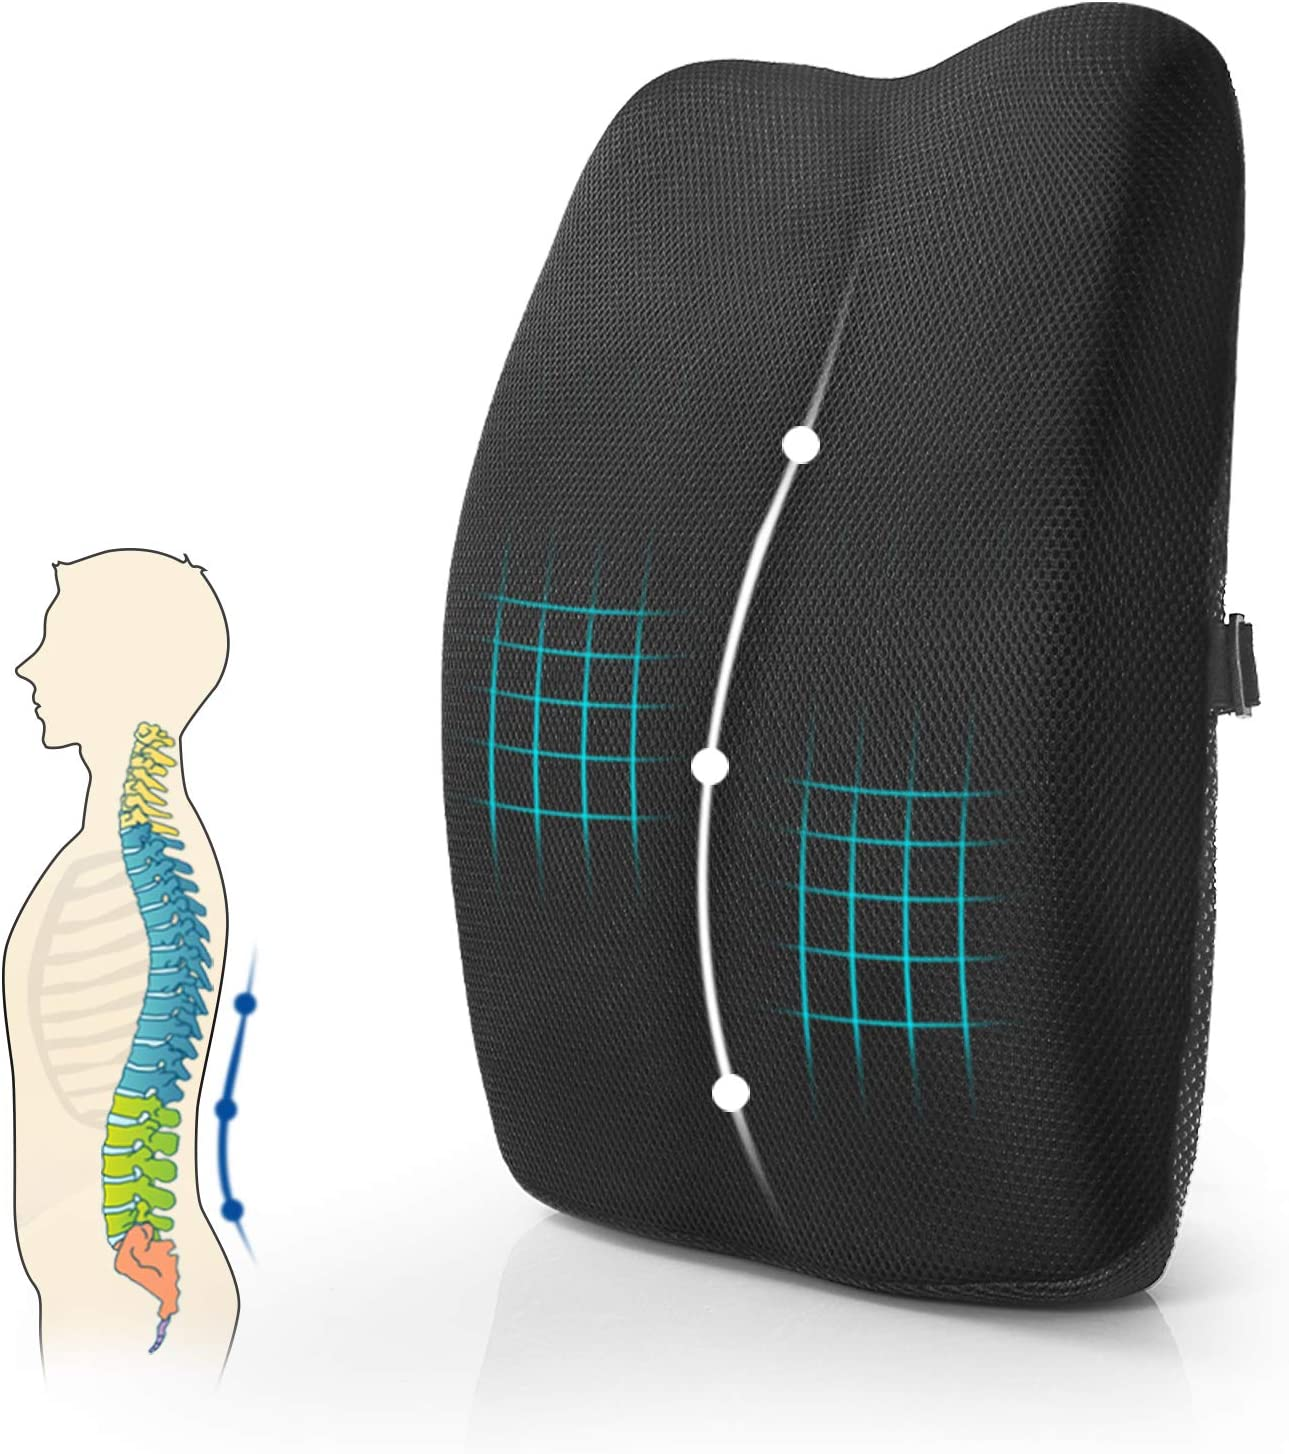 Mkicesky Lumbar Support Back Pillow For Office Chair Car Memory Foam Back Support Cushion With Full Posture Corrector Relief Lower Back Pain Black Amazon Ca Office Products